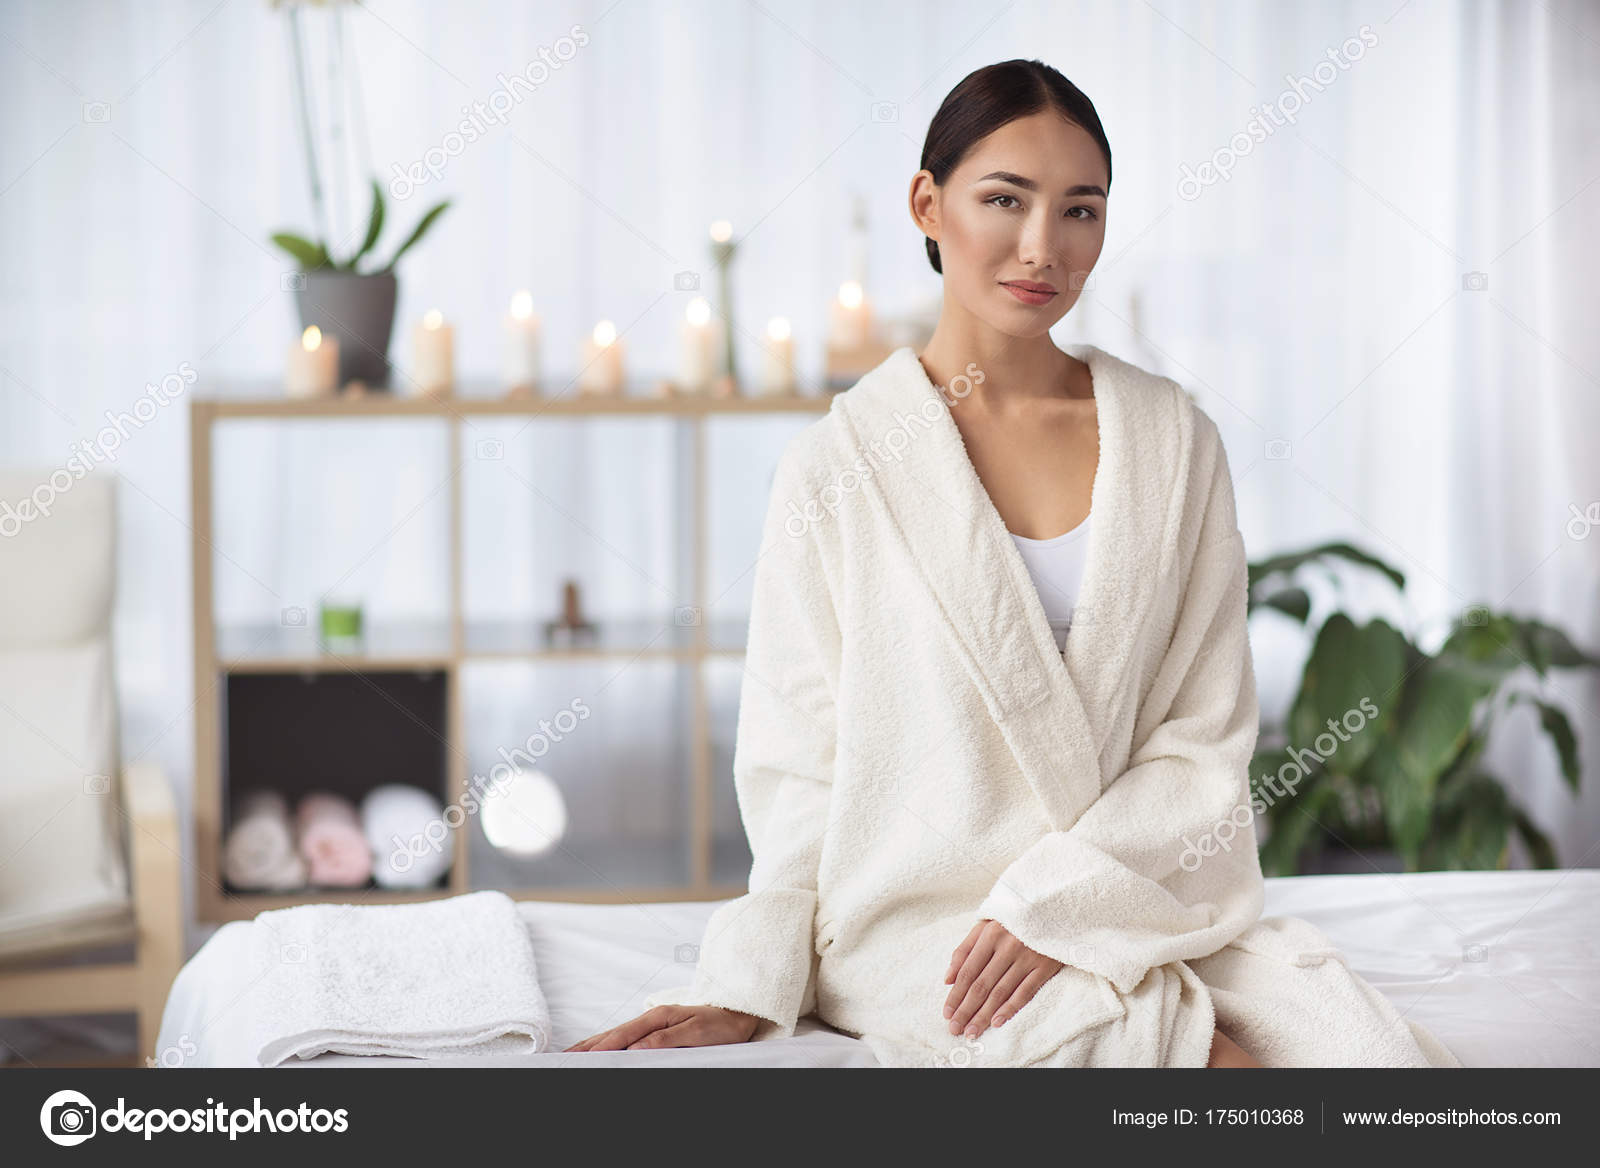 Portrait of elegant relaxed young asian woman in white bathrobe is sitting  on massage table at spa salon with candles in background. 51ae08df2